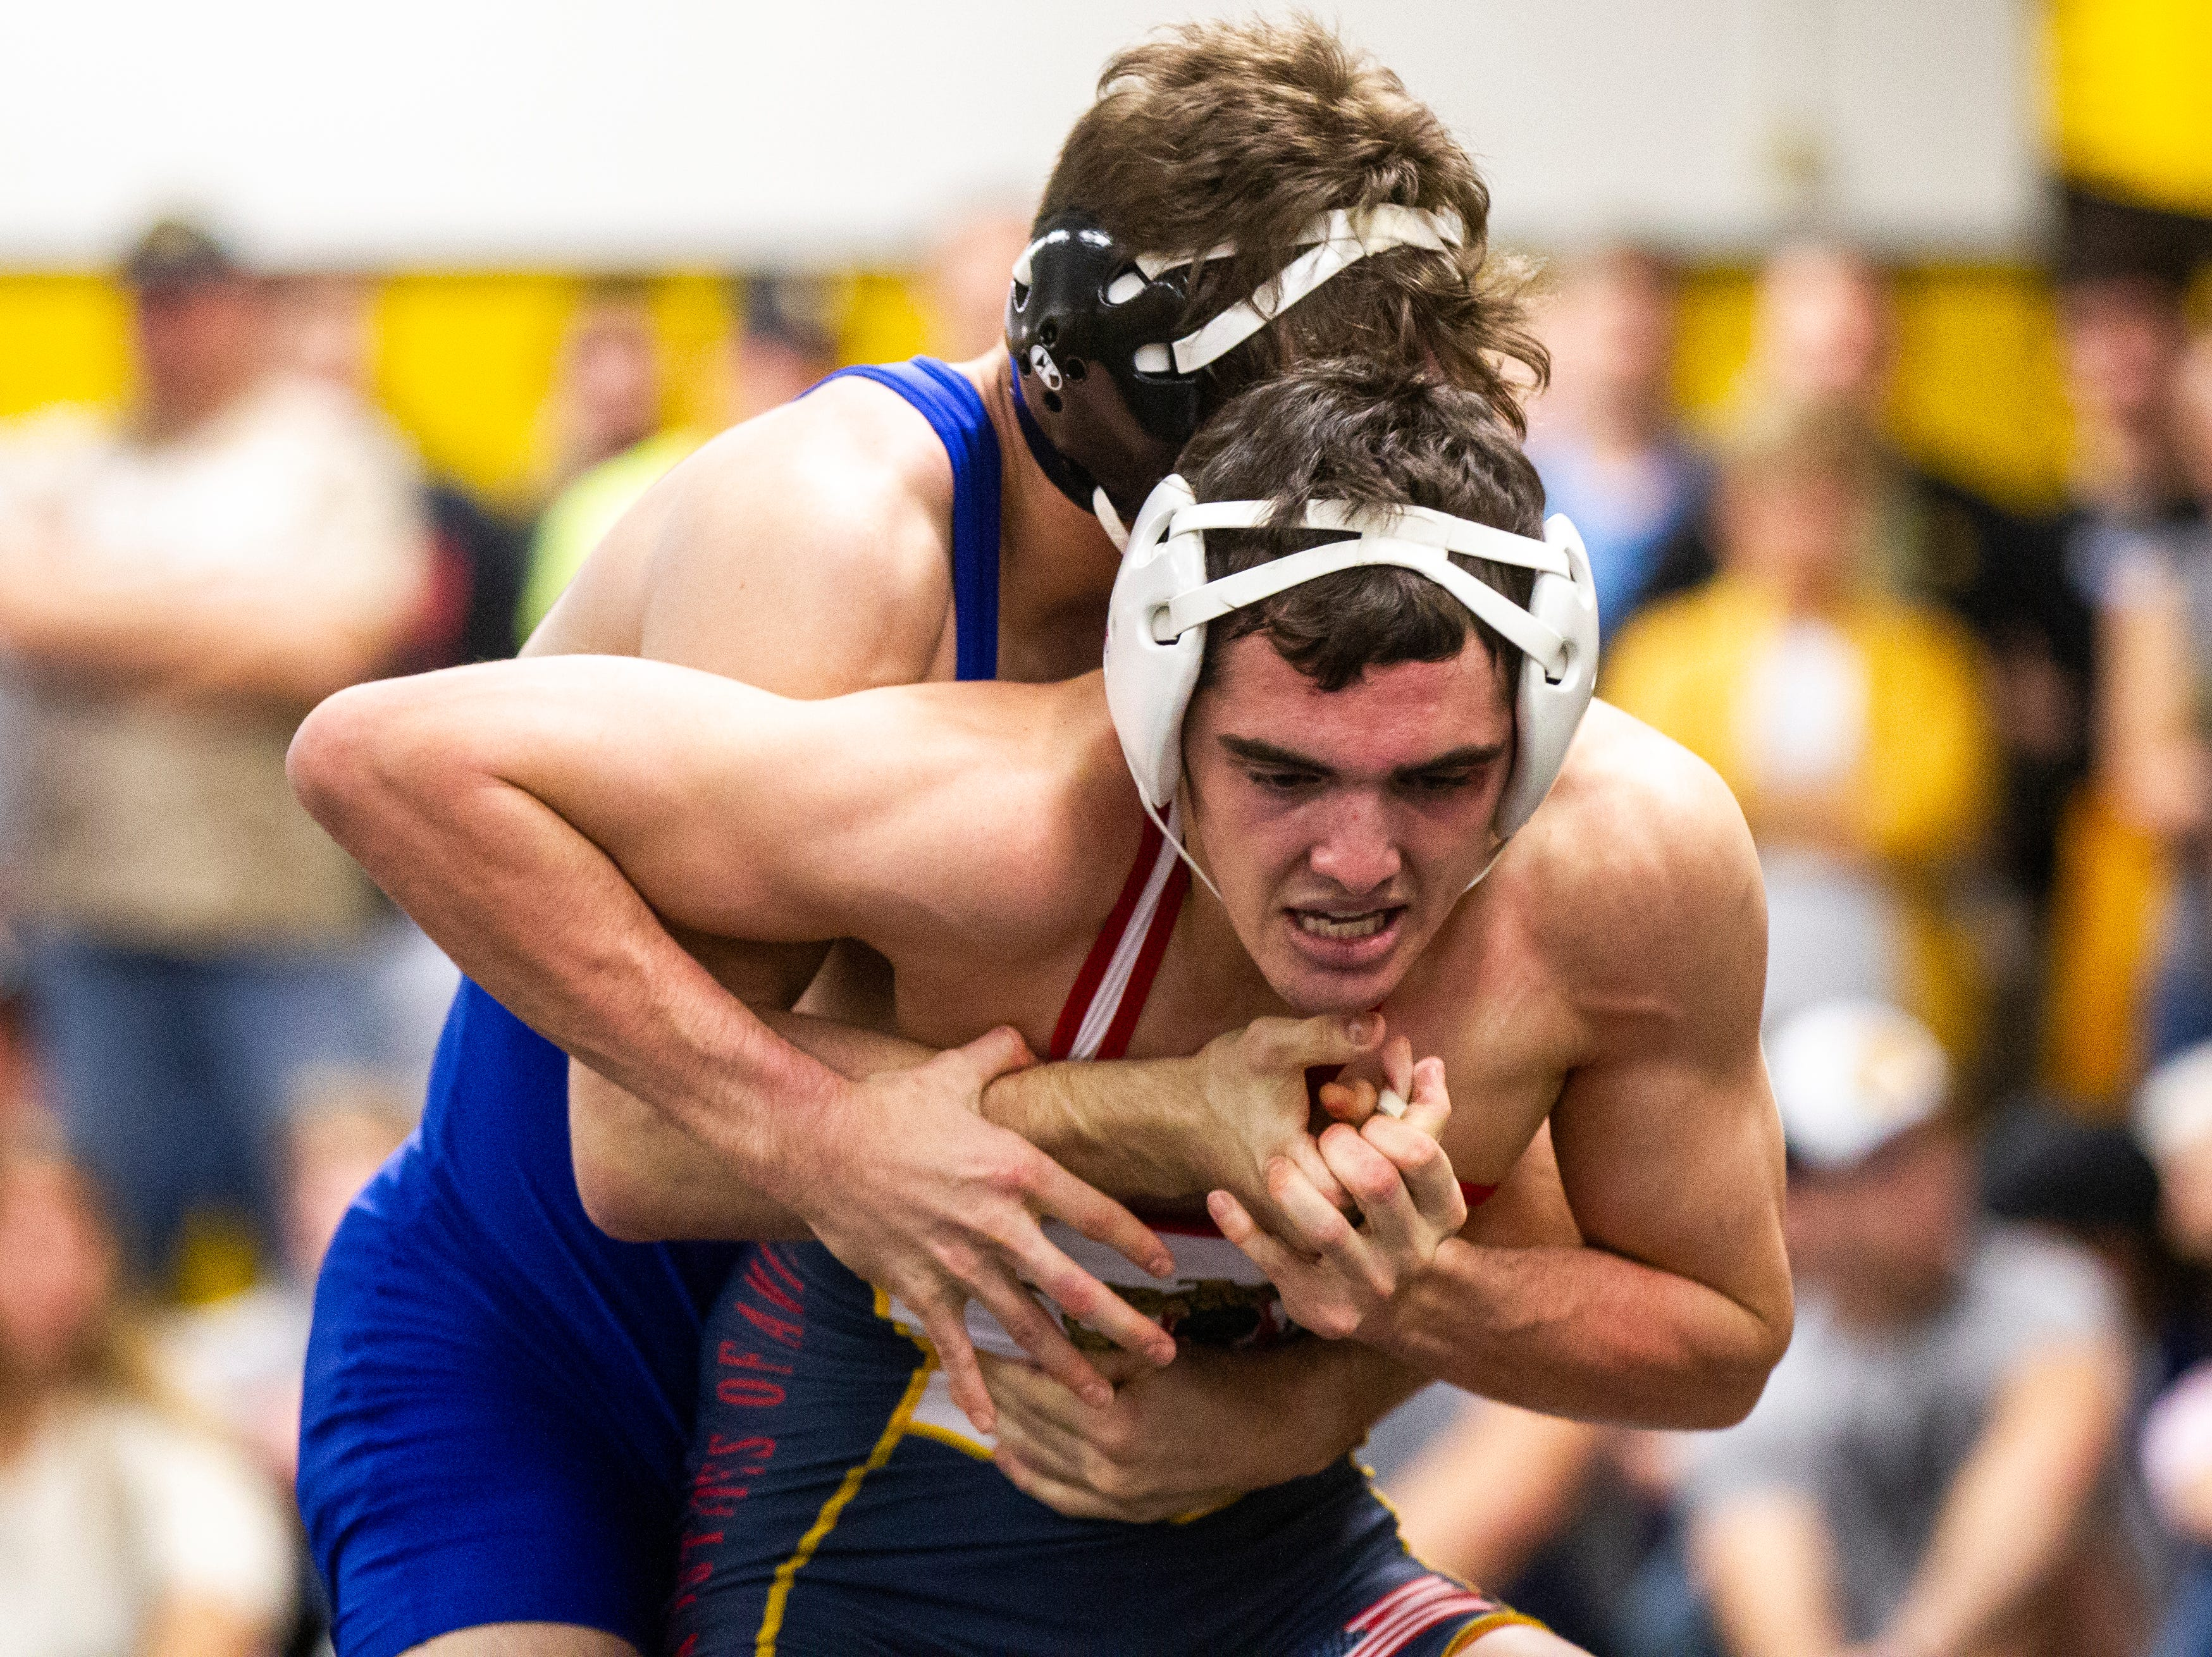 Iowa's Paul Glynn (front) wrestles Austin DeSanto at 133 during the wrestle-offs on Friday, Nov. 2, 2018, inside the Dan Gable Wrestling Complex at Carver-Hawkeye Arena in Iowa City.